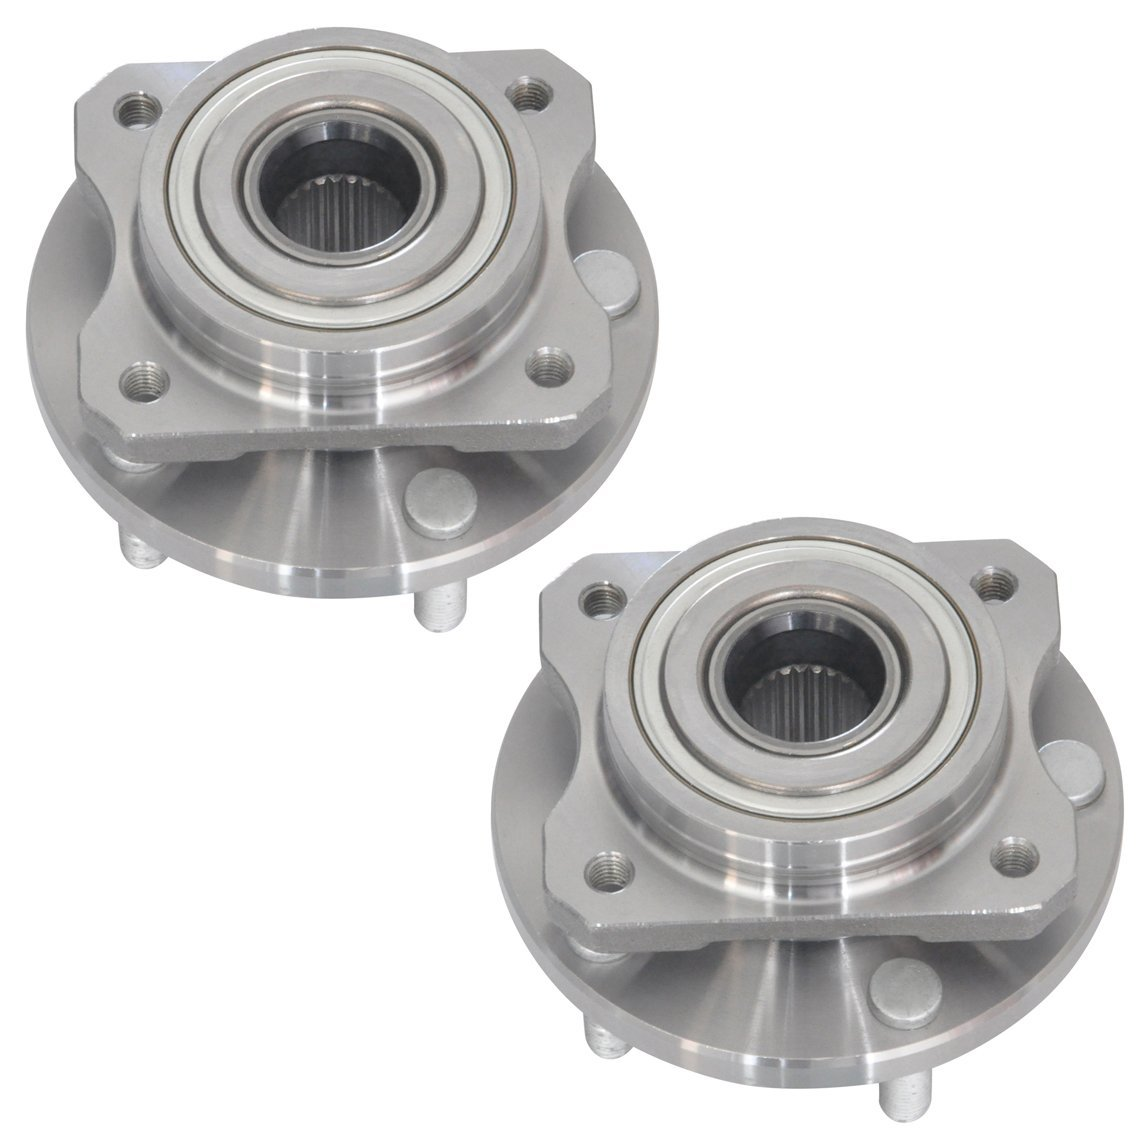 DRIVESTAR 513123X2 (Pair) New Front Wheel Hub Assembly for Dodge Chrysler Caravan Town & Country